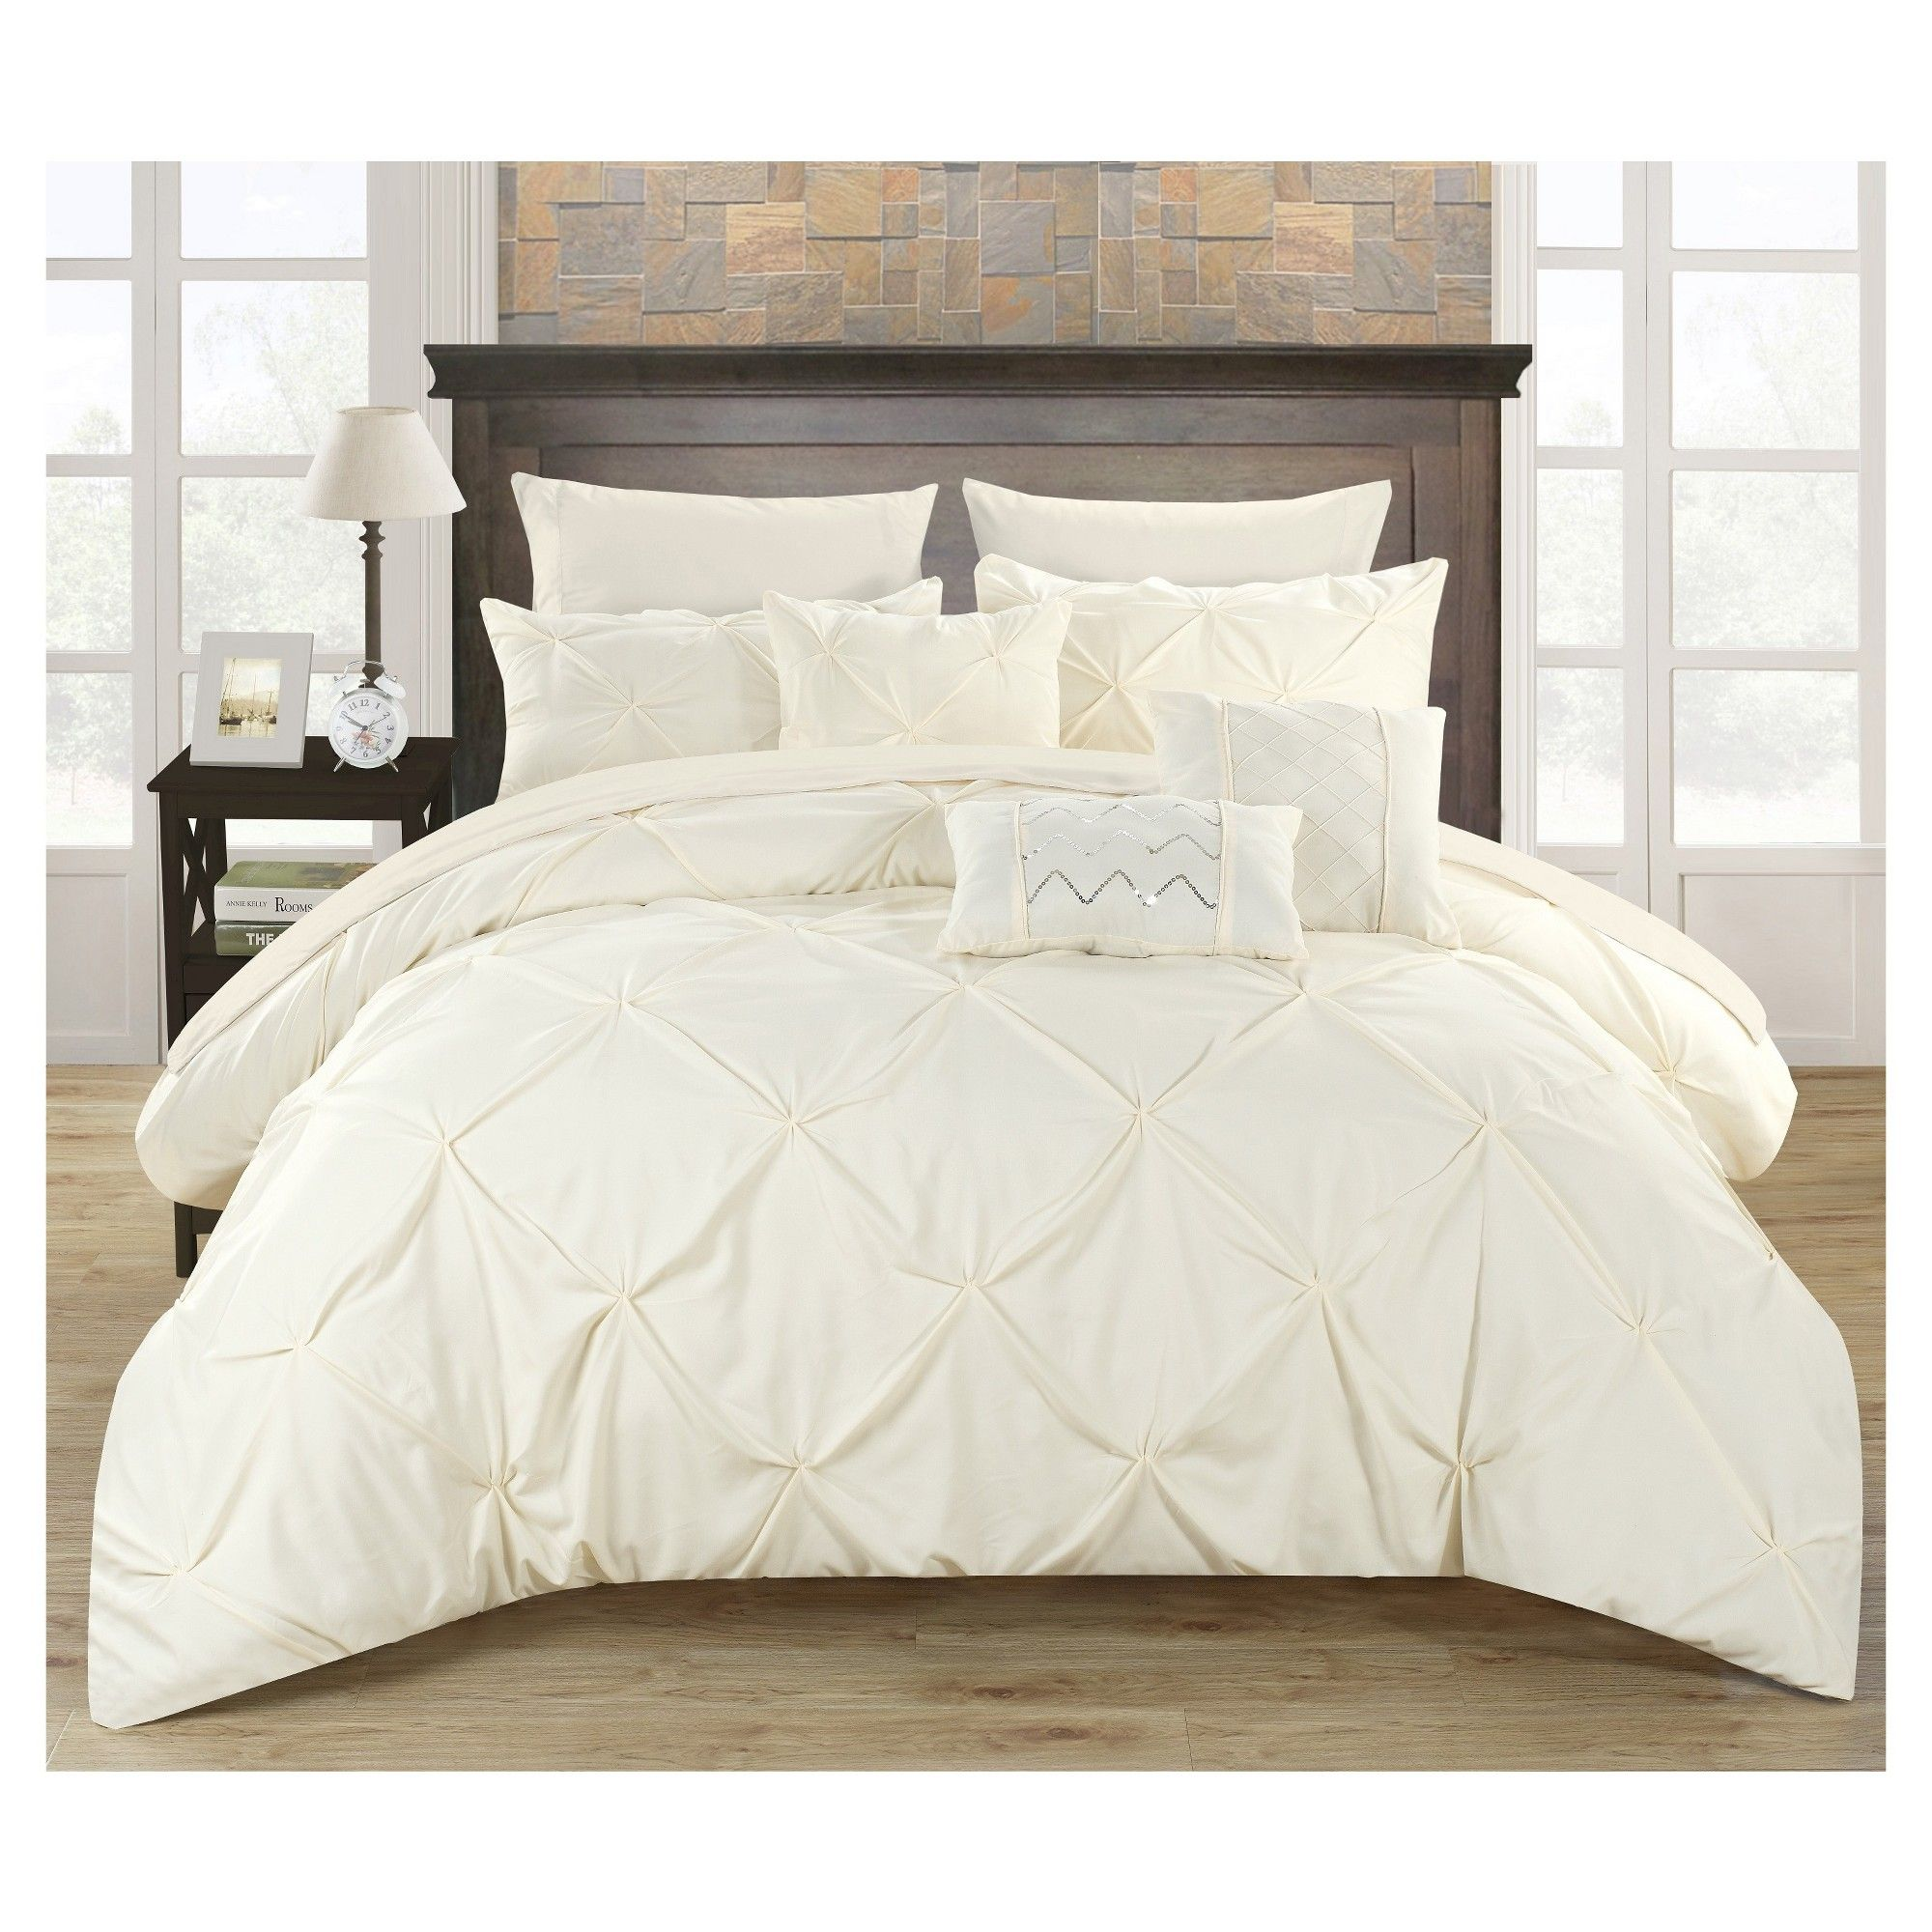 Valentina Pinch Pleated & Ruffled Comforter Set 10 Piece (Queen ...